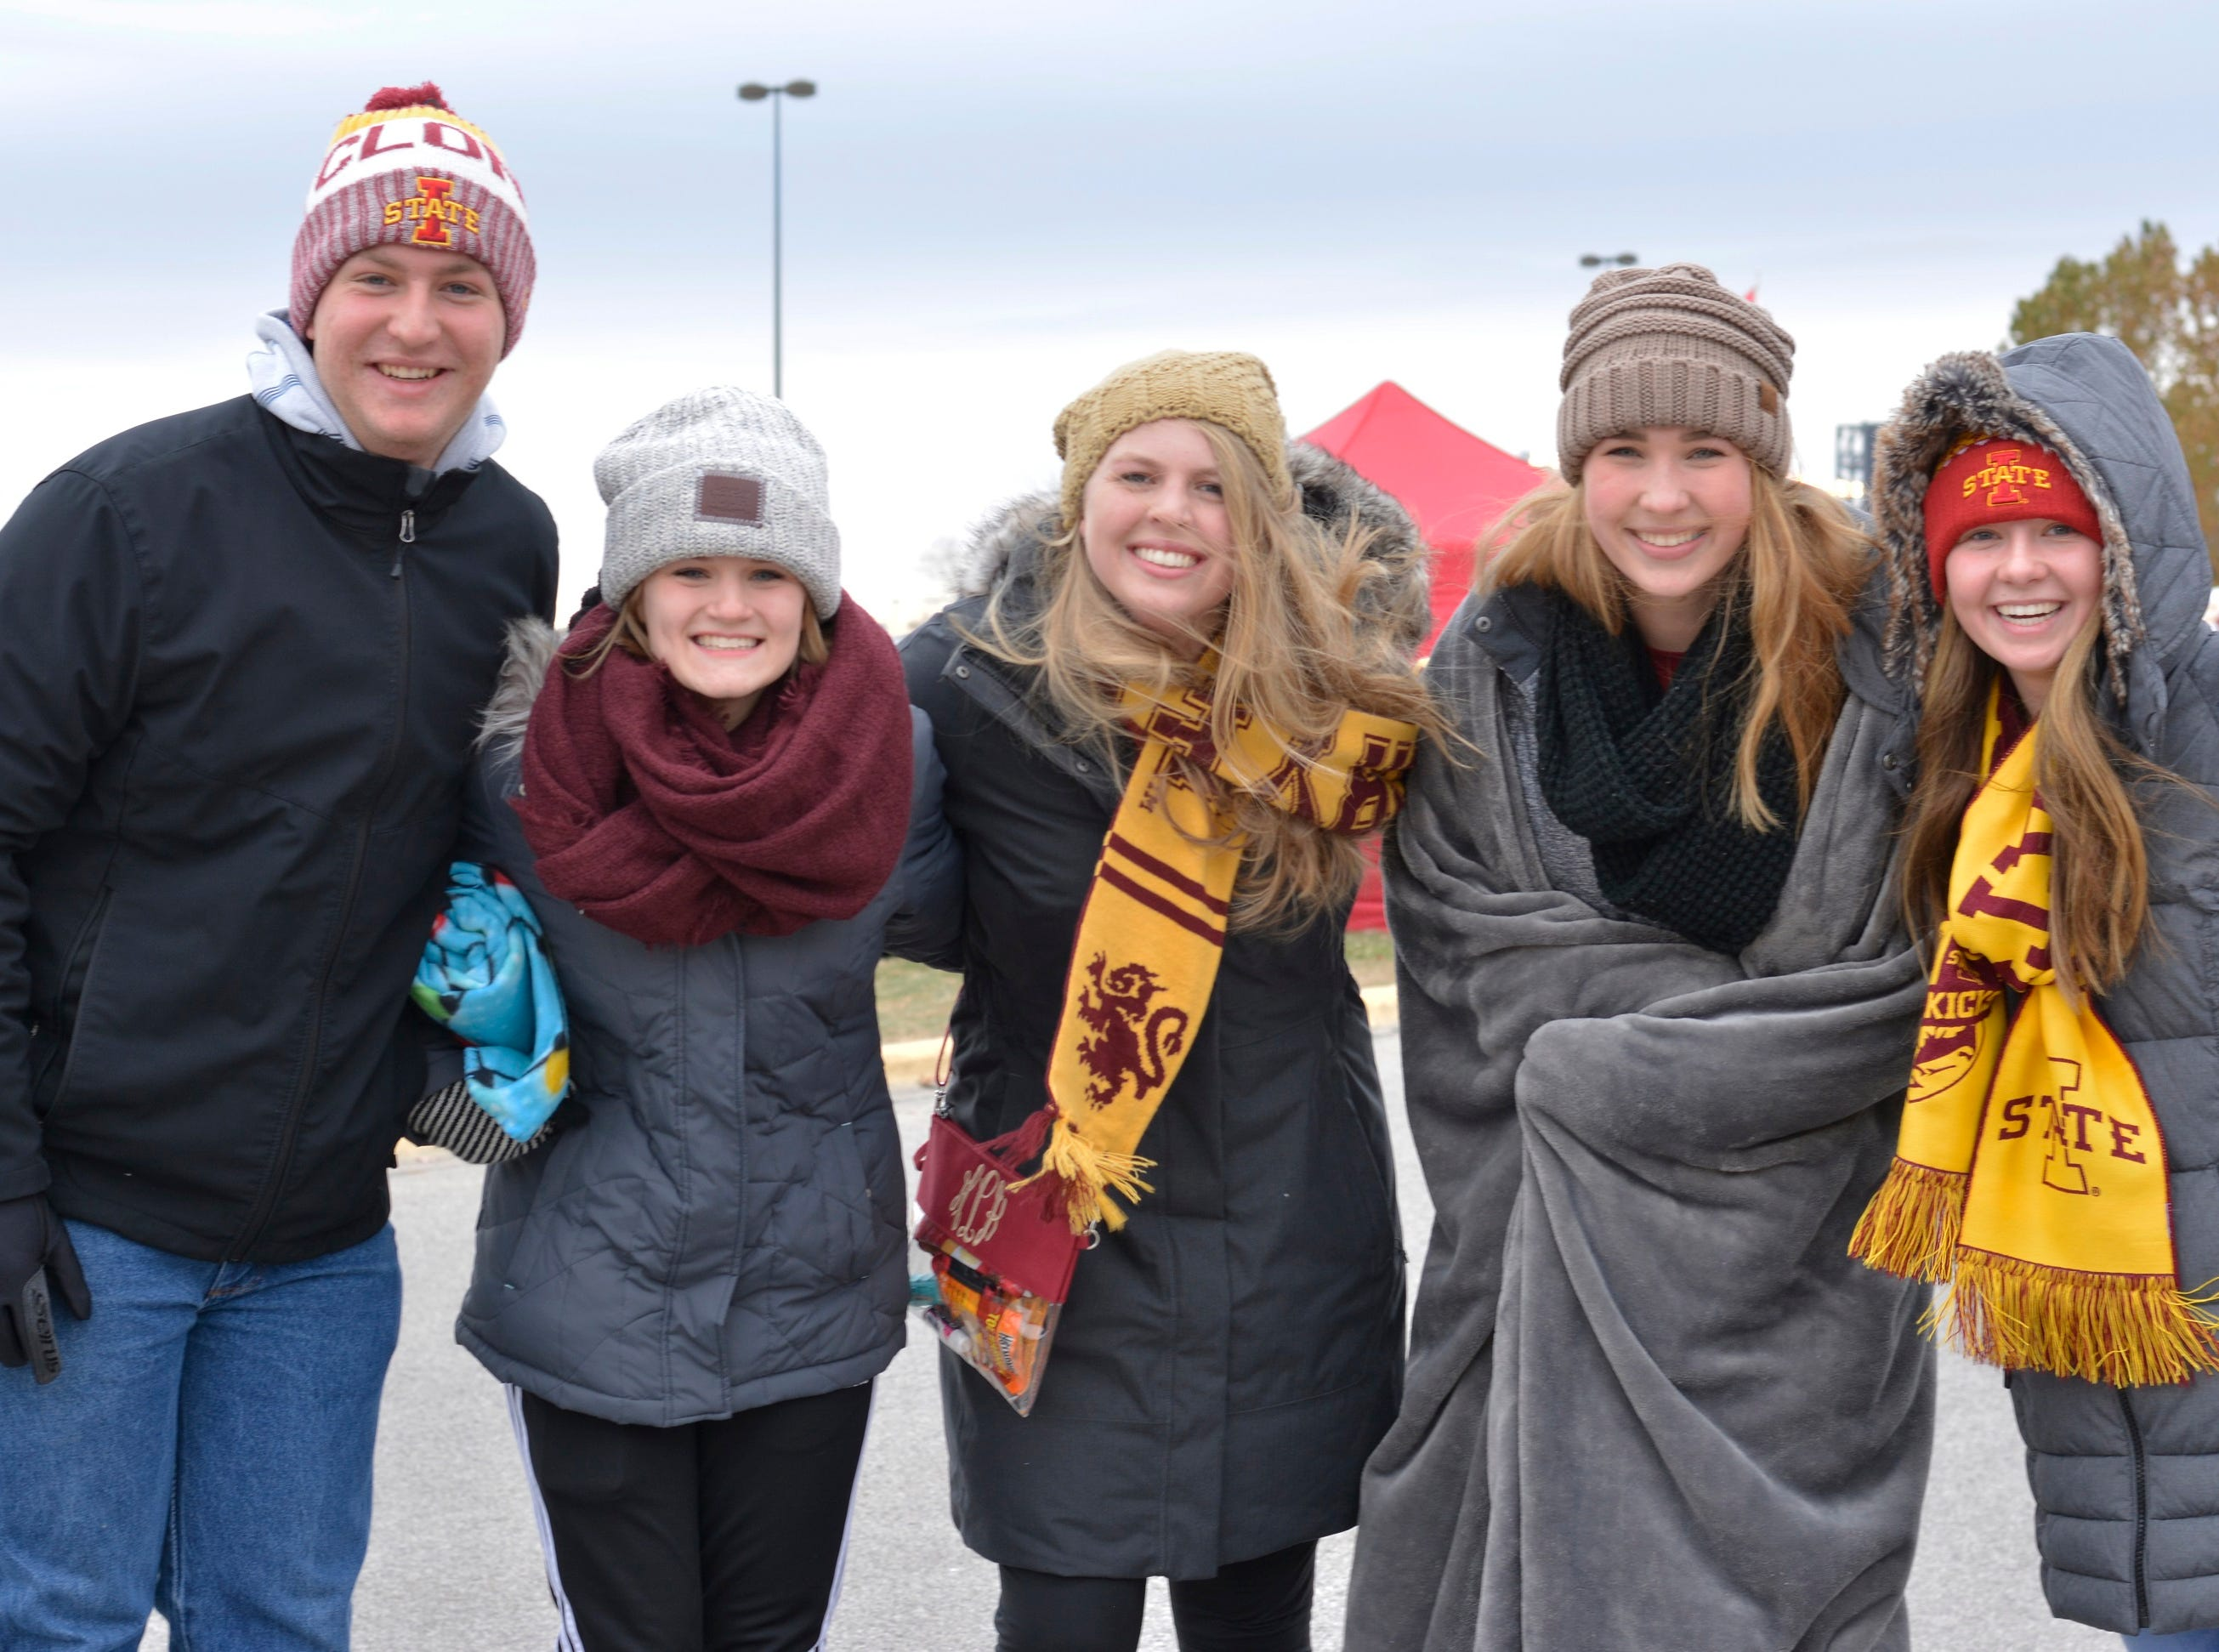 A group of Iowa State football fans before the Iowa State University football game against Baylor in Ames on Nov. 10.